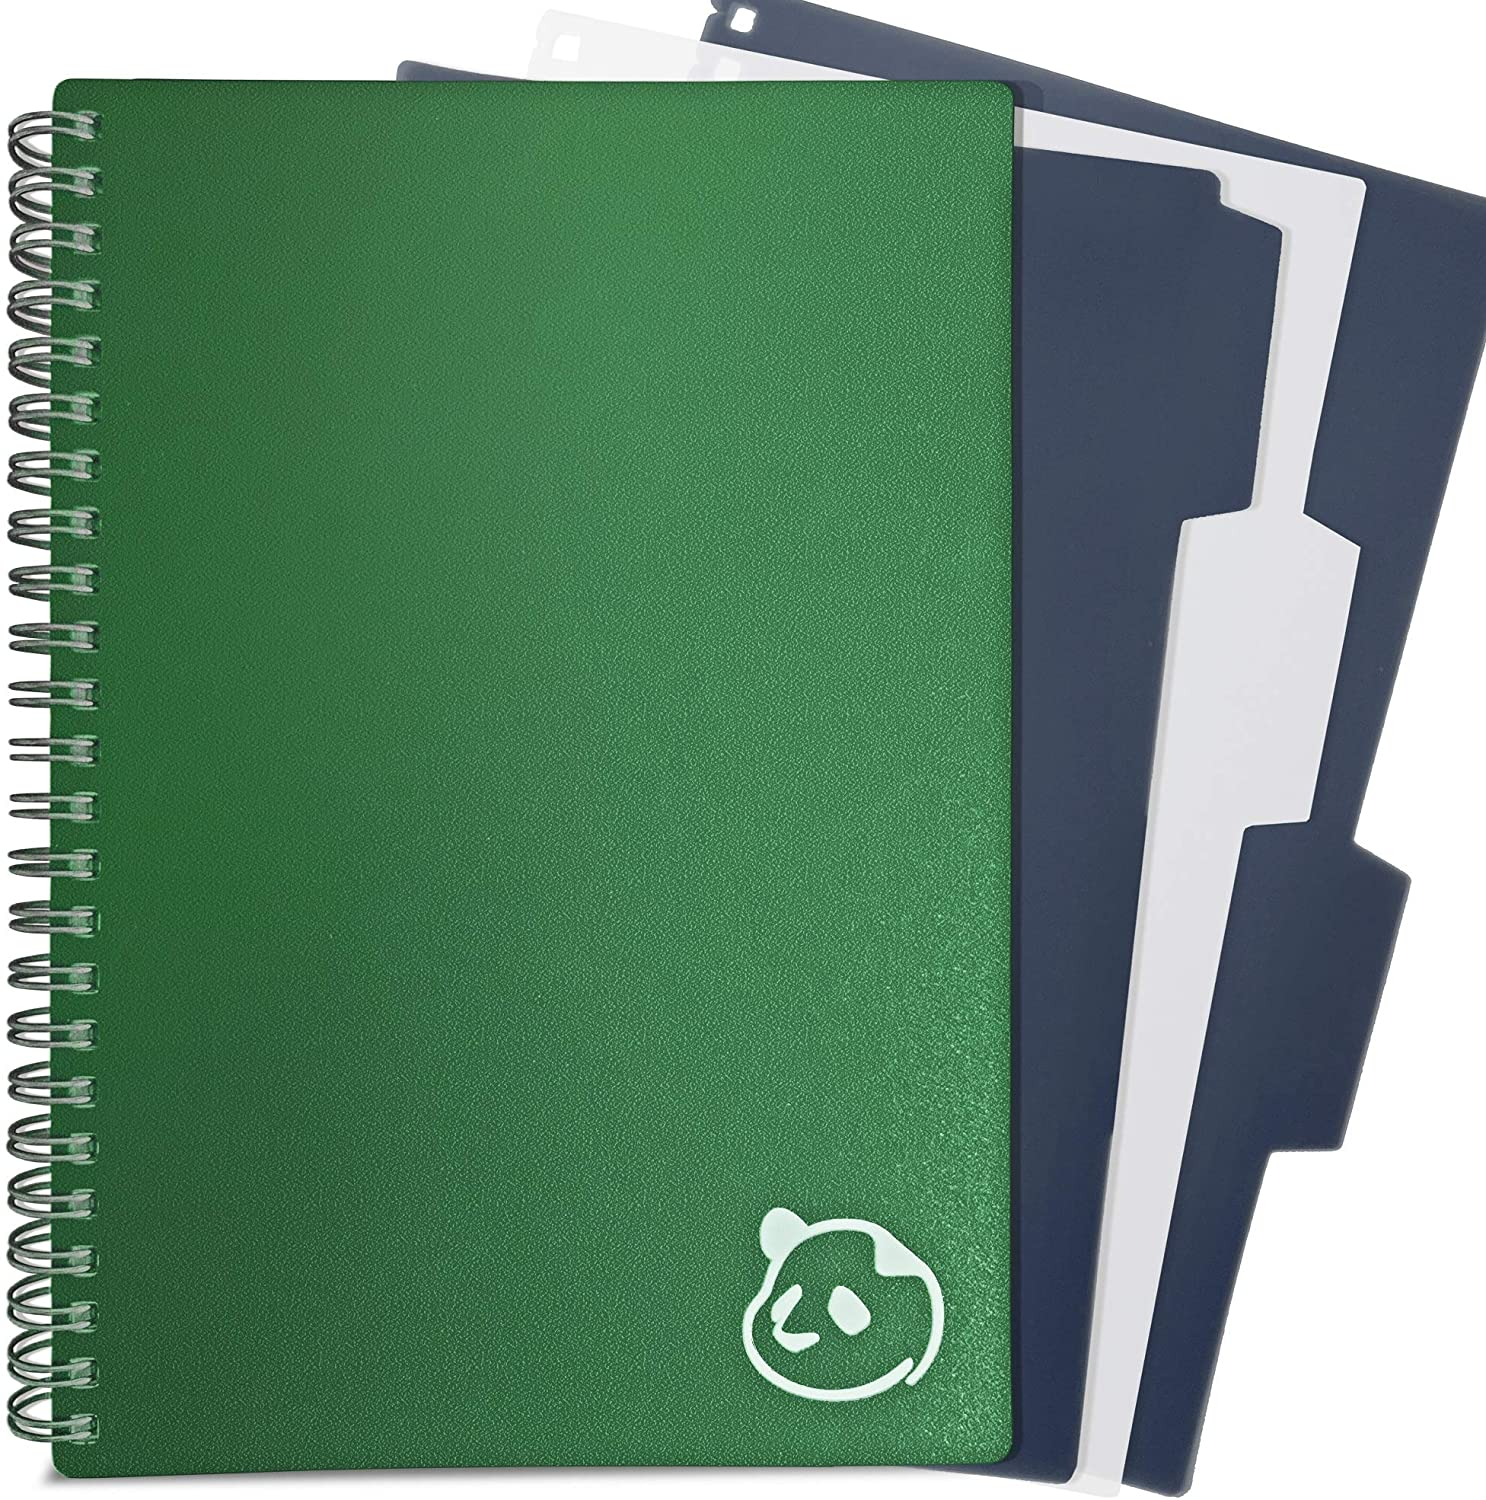 """Daily Planner 2.0 - by Panda Planner 2020-2021 - Monthly Calendar, Weekly Organizer and Day Planner Sections - Undated and Wire Binding - 3 Month Planner - 8.25"""" x 5.75"""" - Green"""